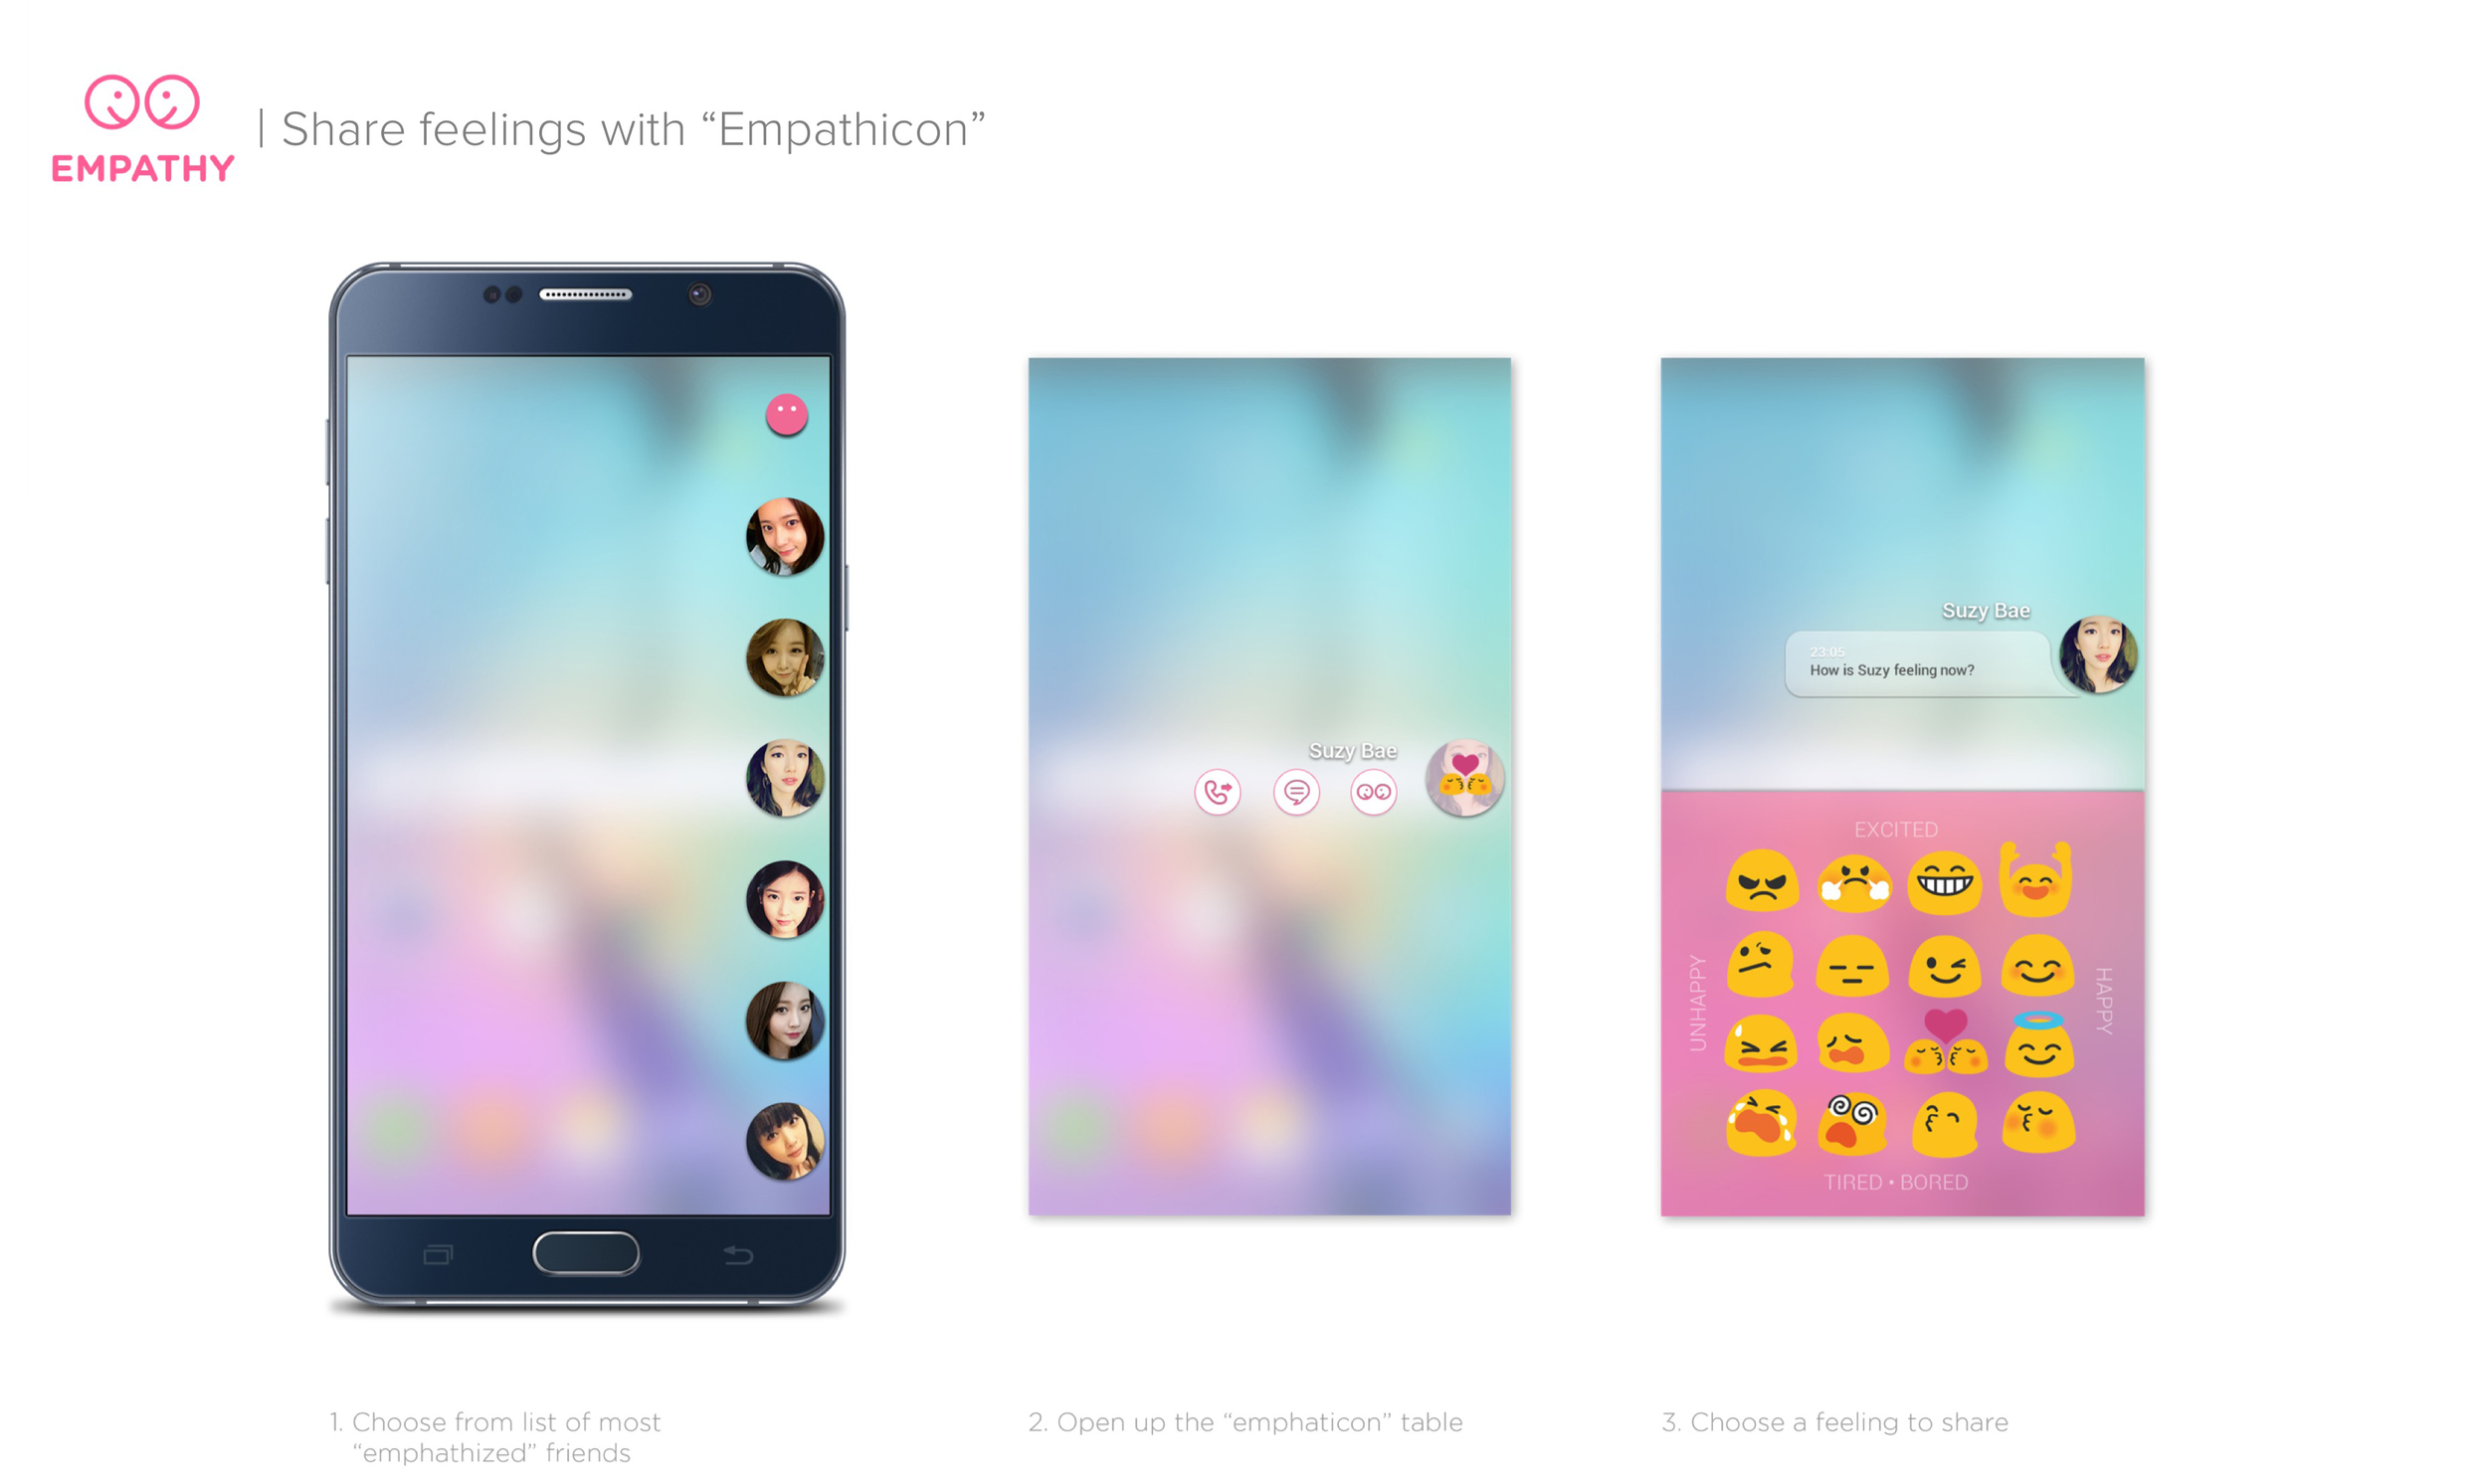 Empathy_Android GUI flow_02.jpg